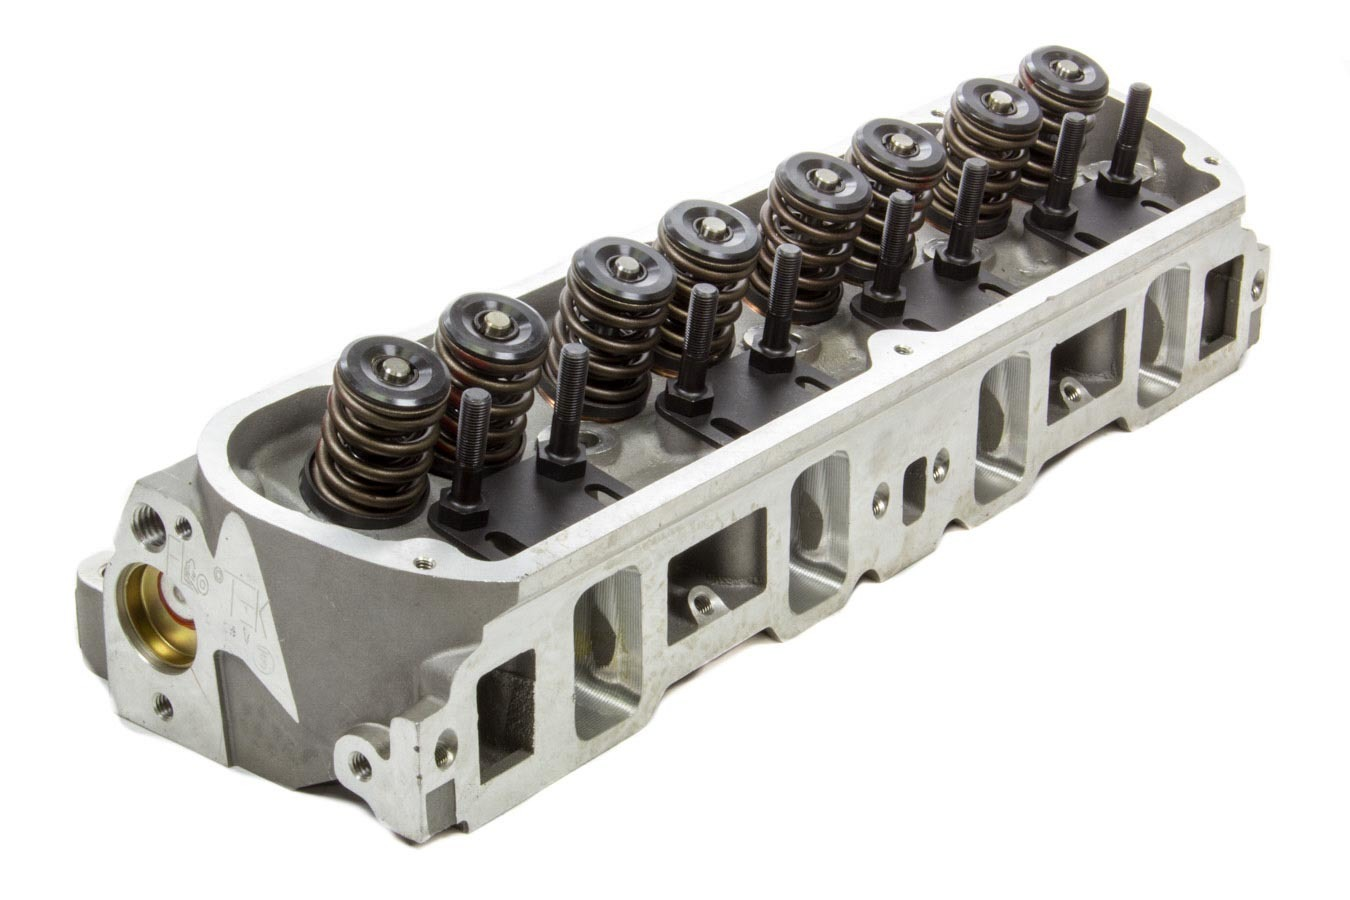 Flo-Tek 2190-HRCNC-505 Cylinder Head, Assembled, 2.020 / 1.550 in Valves, 190 cc Intake, 60 cc Chamber, 1.460 in Springs, Aluminum, Small Block Ford, Each